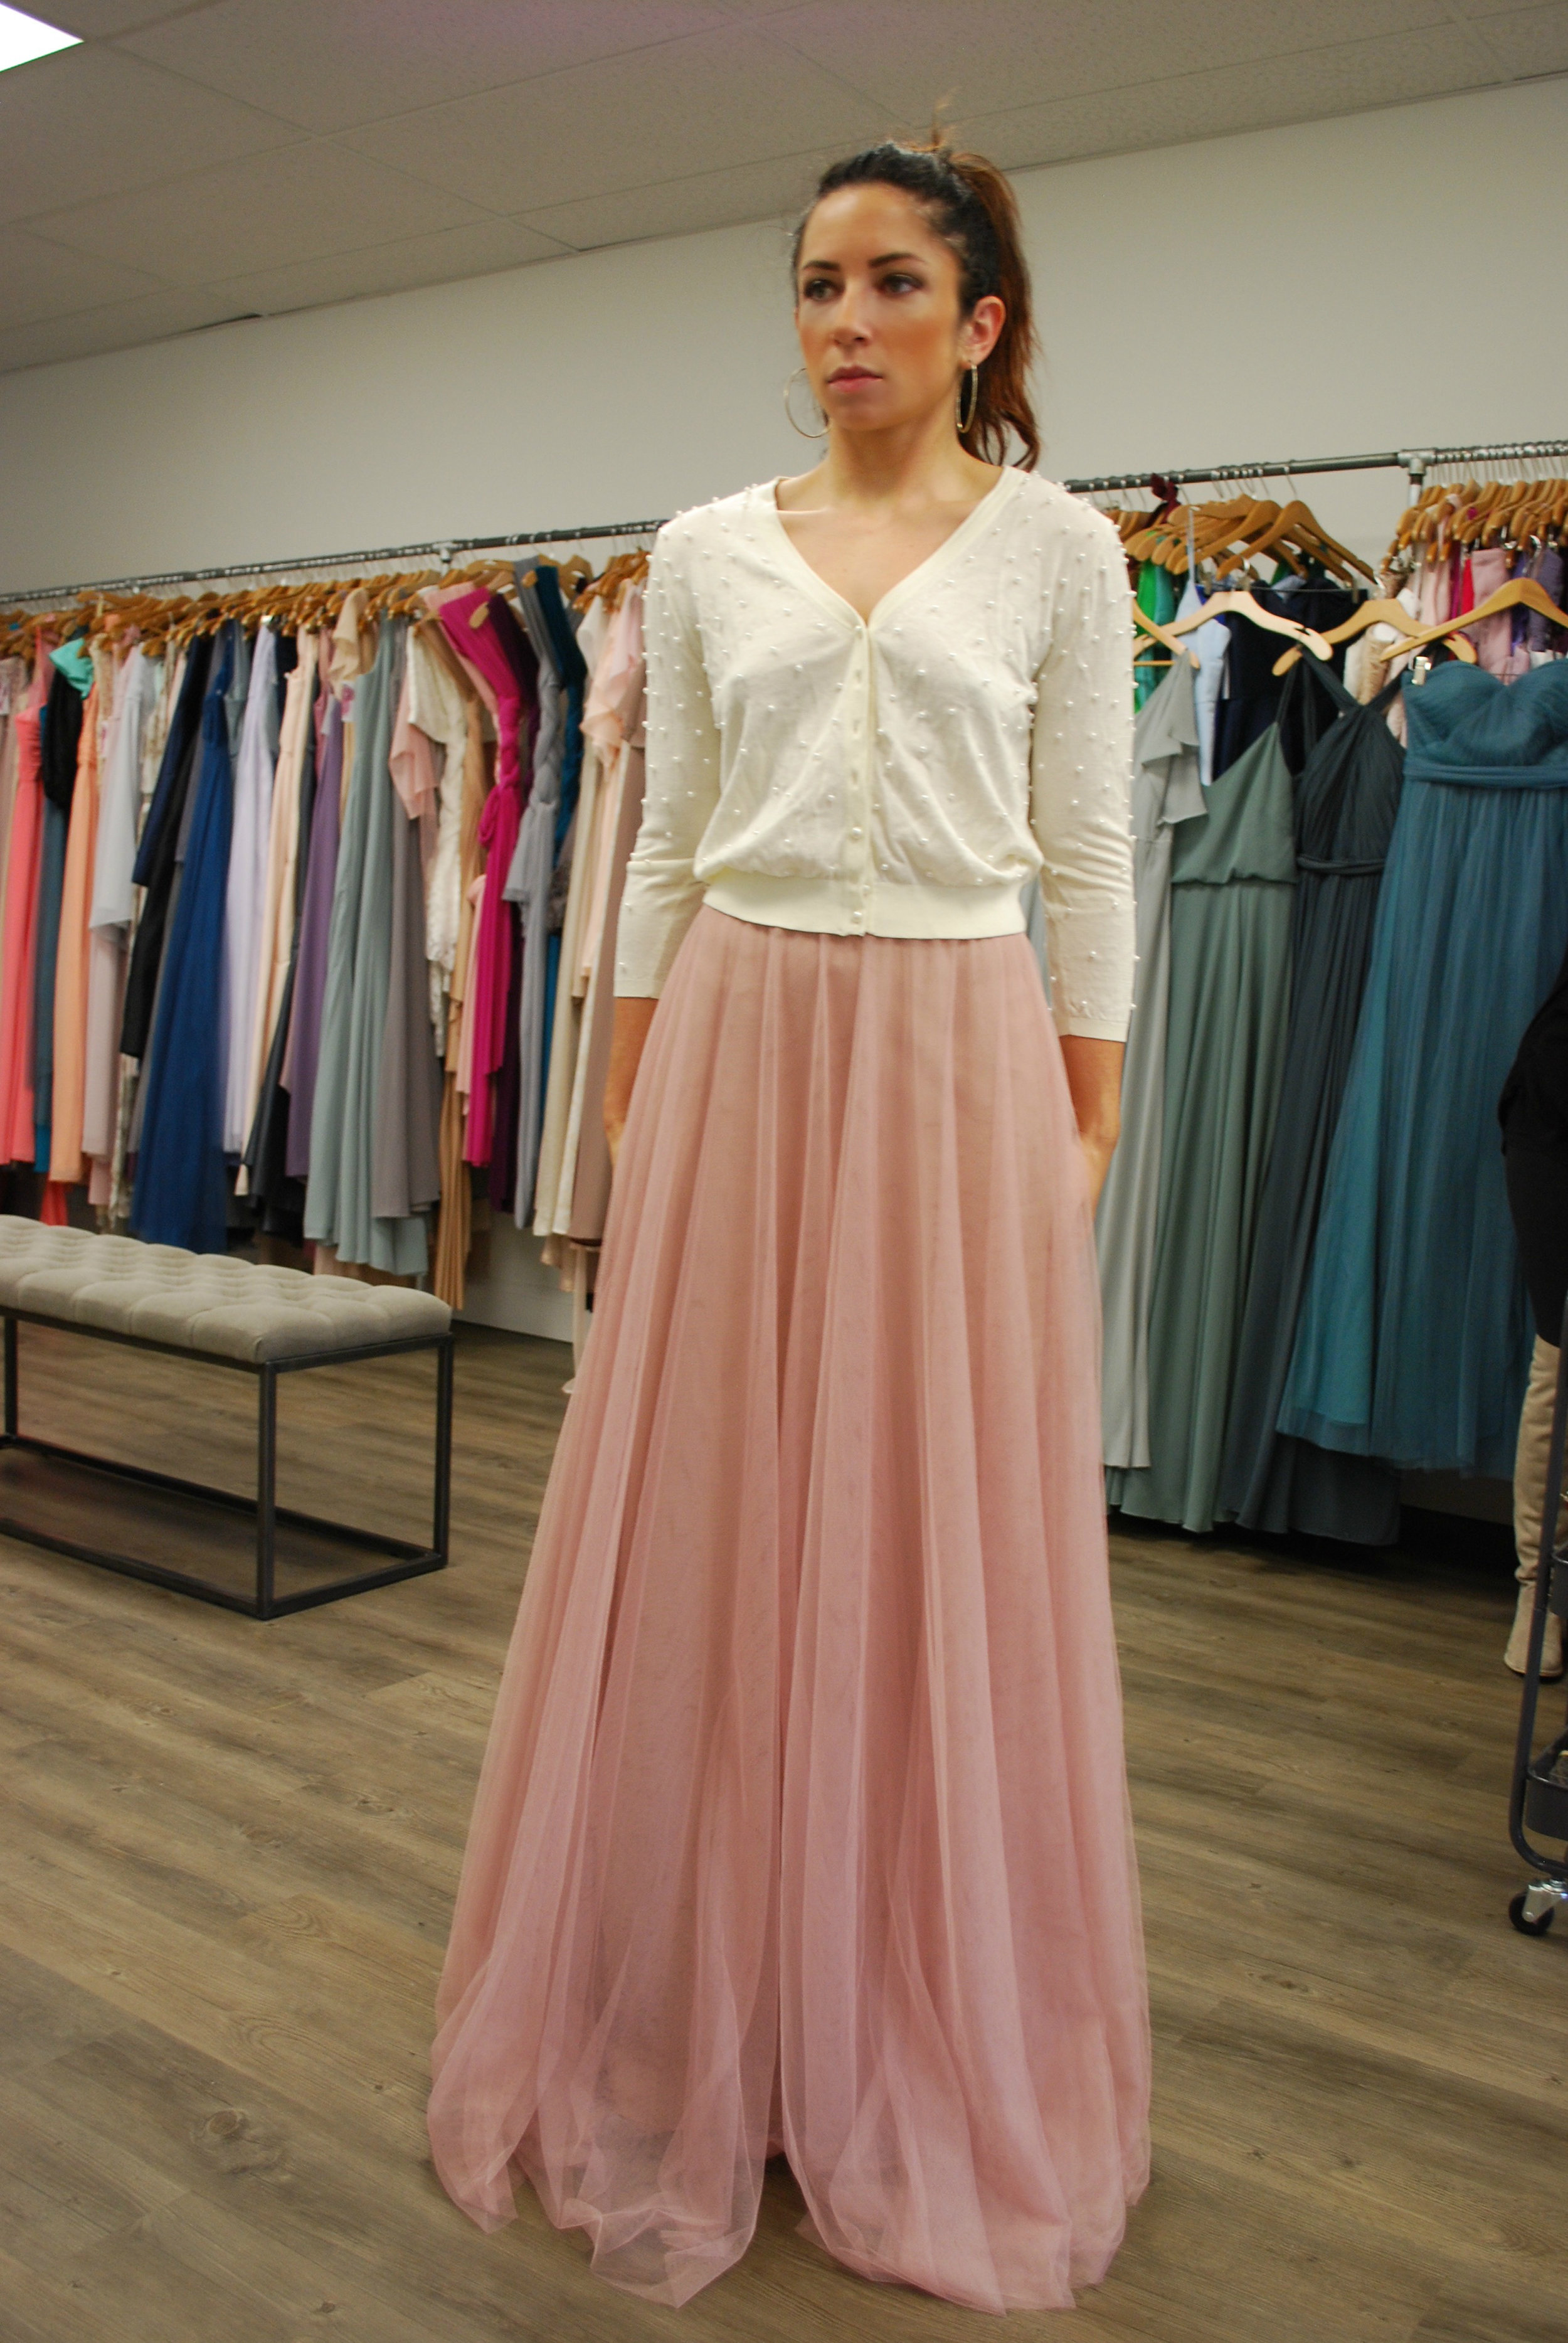 I love the idea of separates for bridesmaids. I could see this skirt with a wrap blouse or a lace crop top. I am considering separates for my own dress design for the wedding, but I will save that for another blog post.